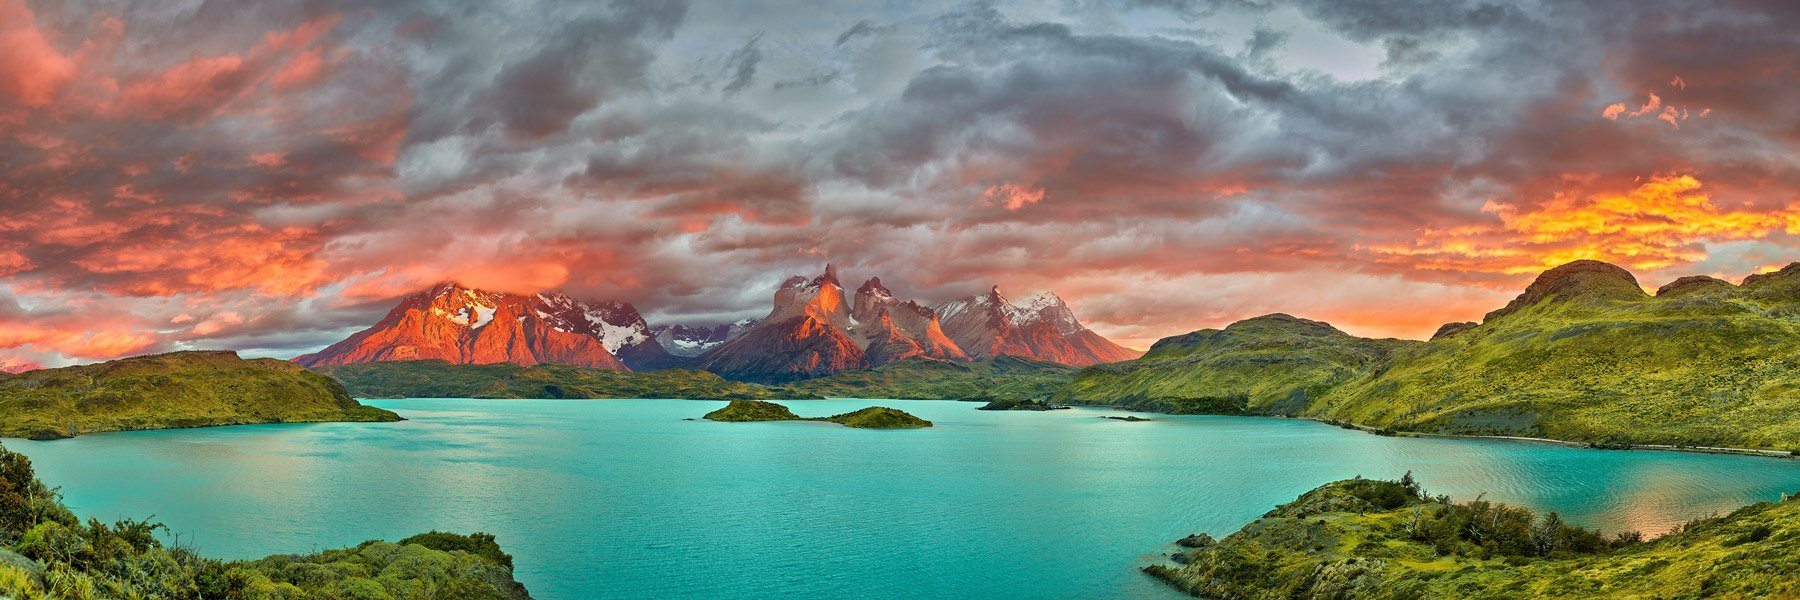 A brilliant sunrise exploding over a glacial lake, Torres Del Paine National Park, Patagonia, Chile.